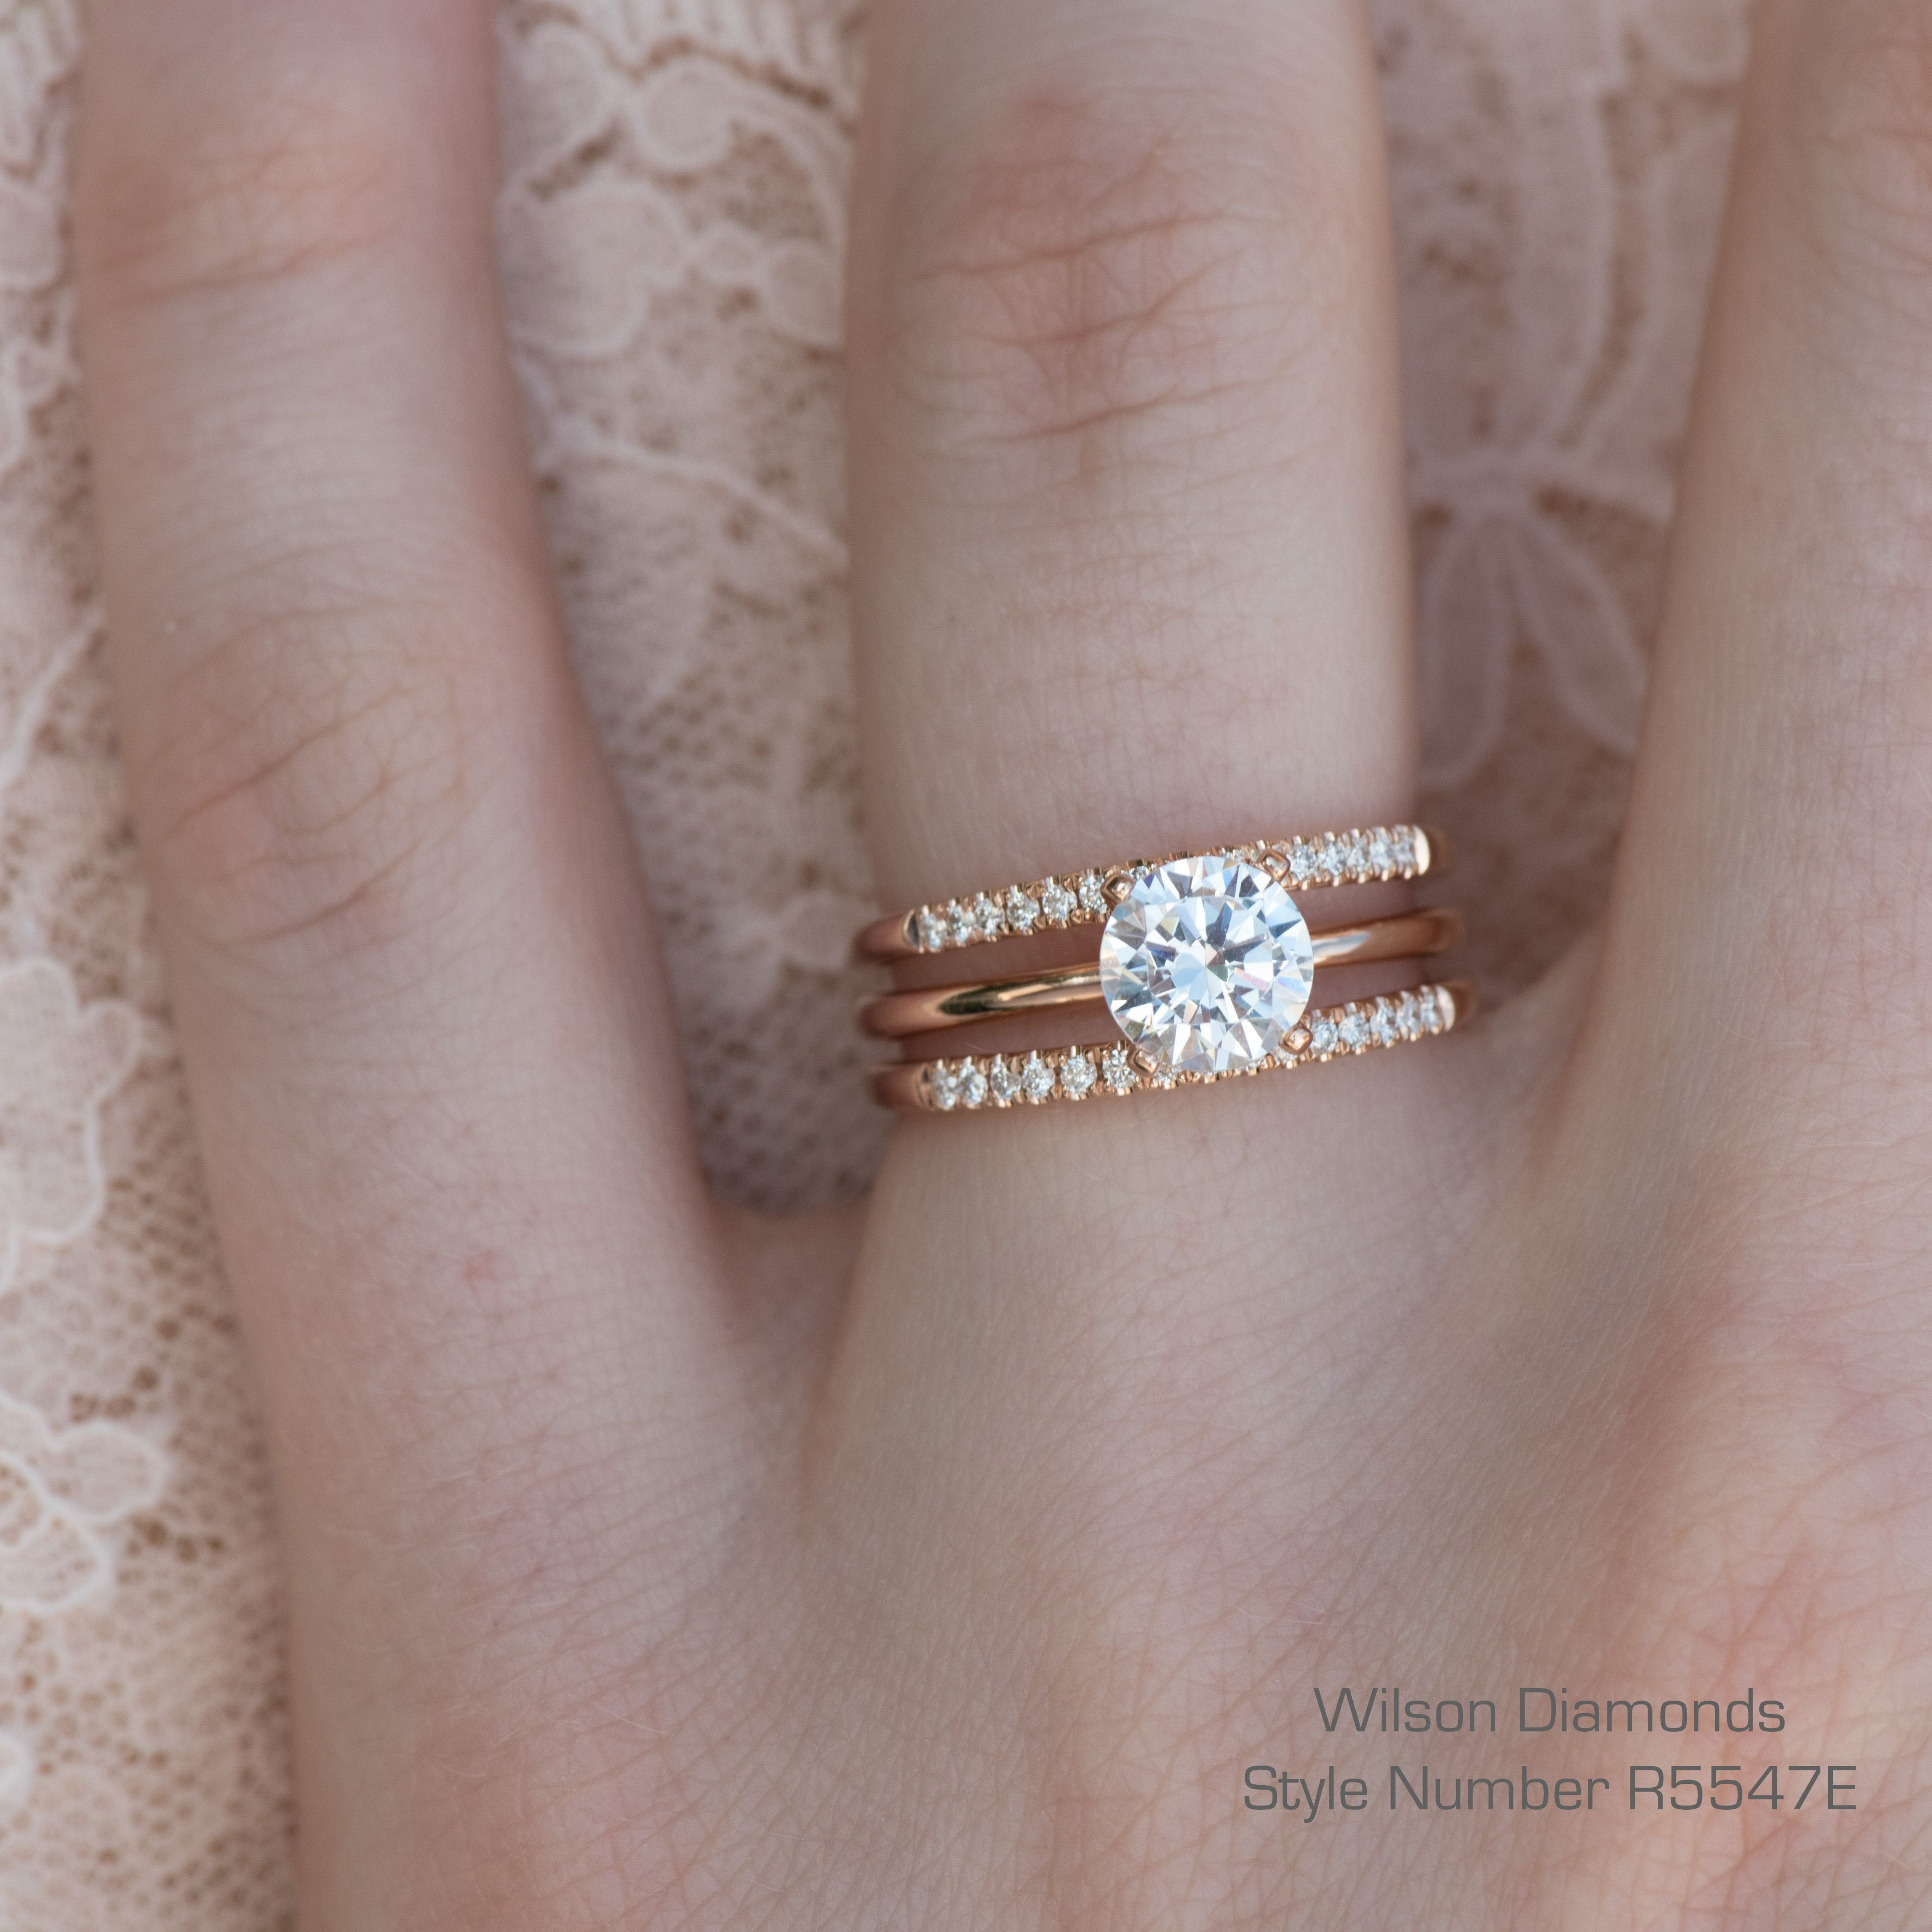 Found on Weddingbeecom Share your inspiration today Rings and